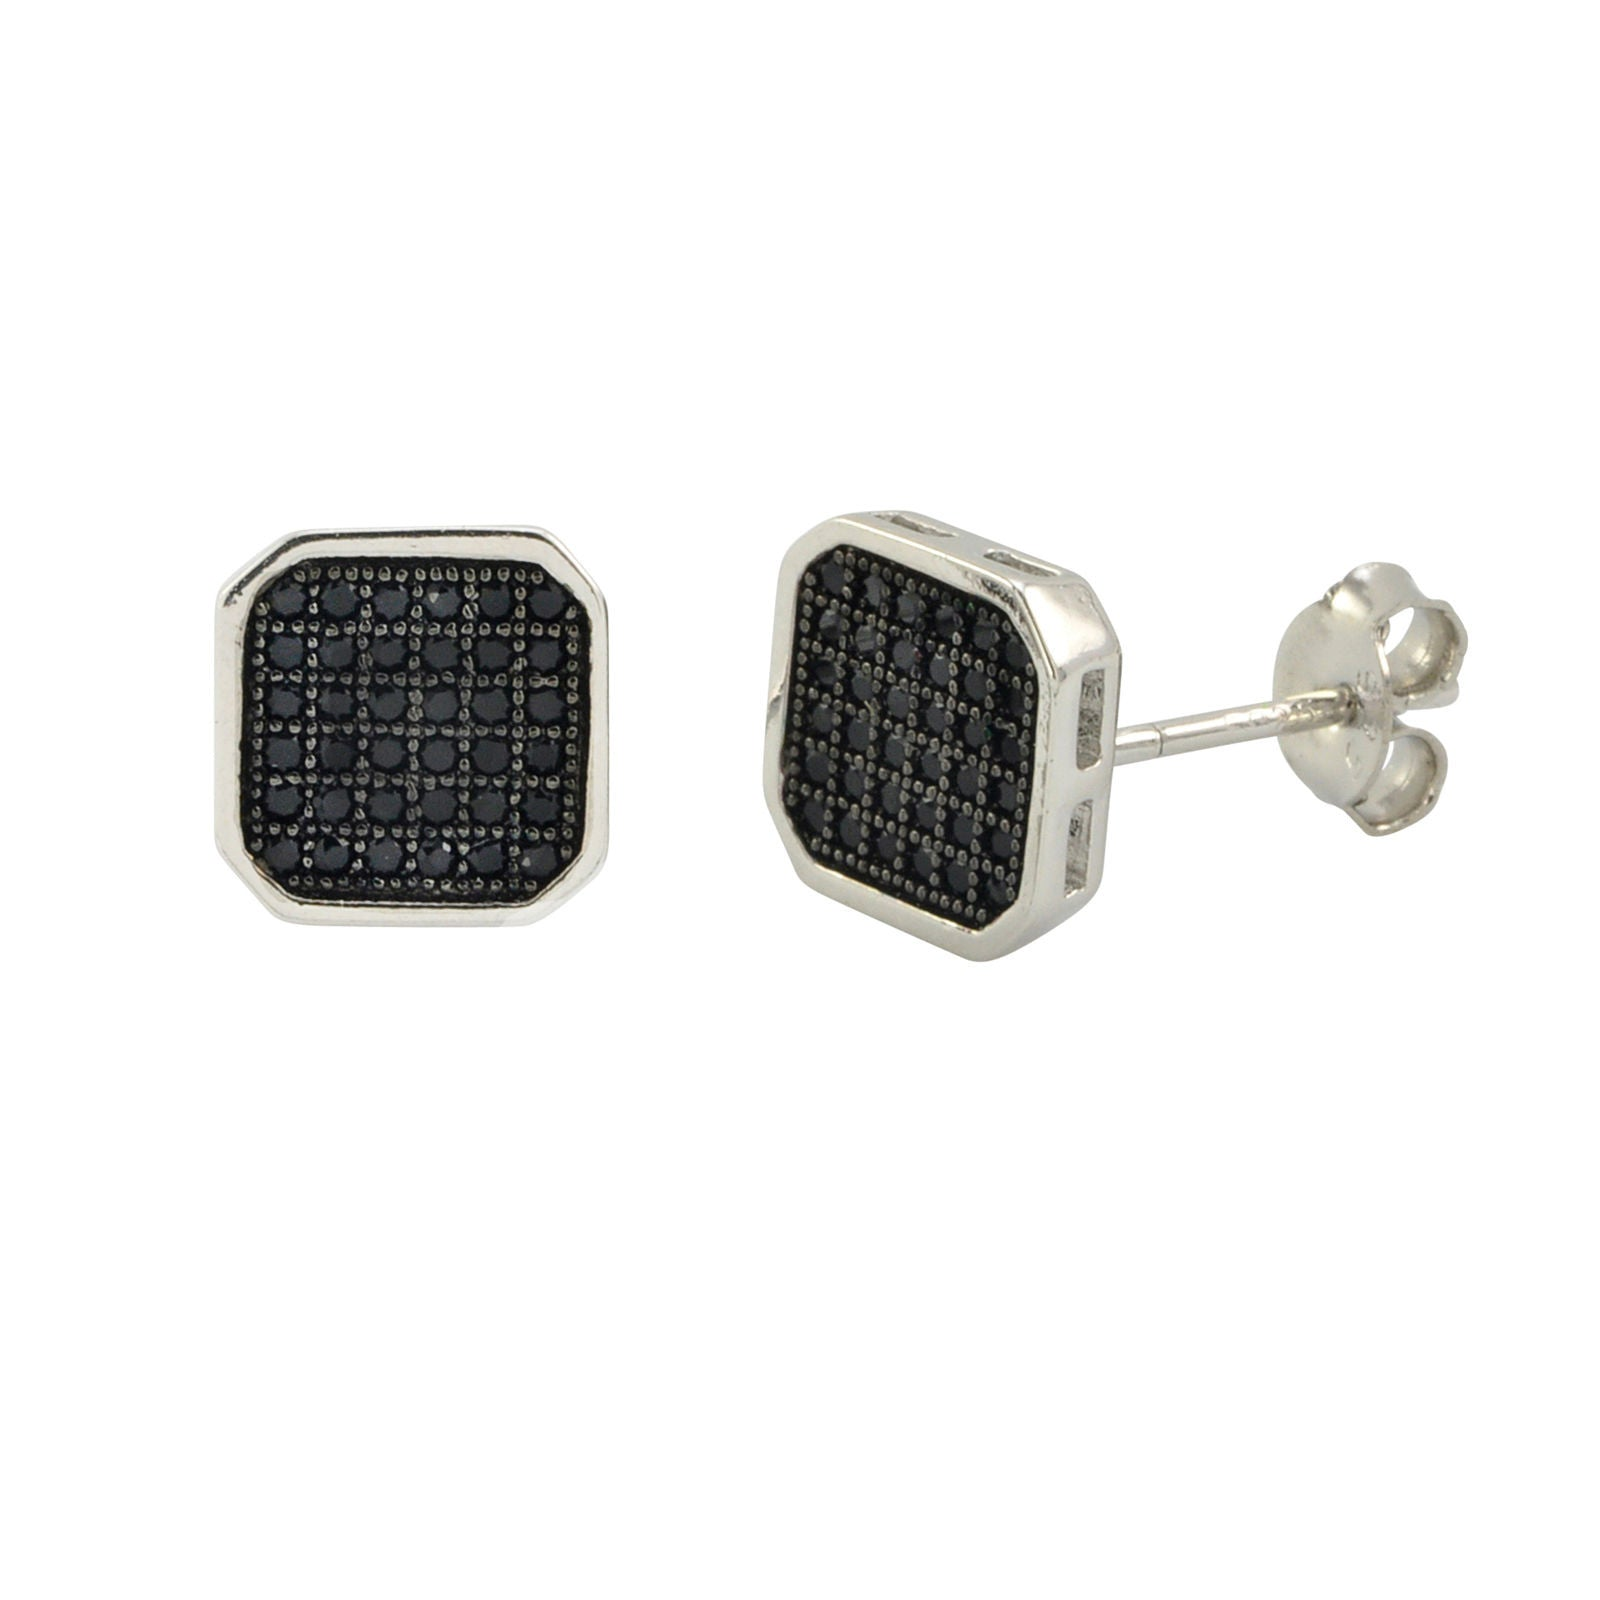 a2282468a Mens Earrings 925 Sterling Silver Black Pave Cubic Zirconia CZ 9mm Square  Shaped